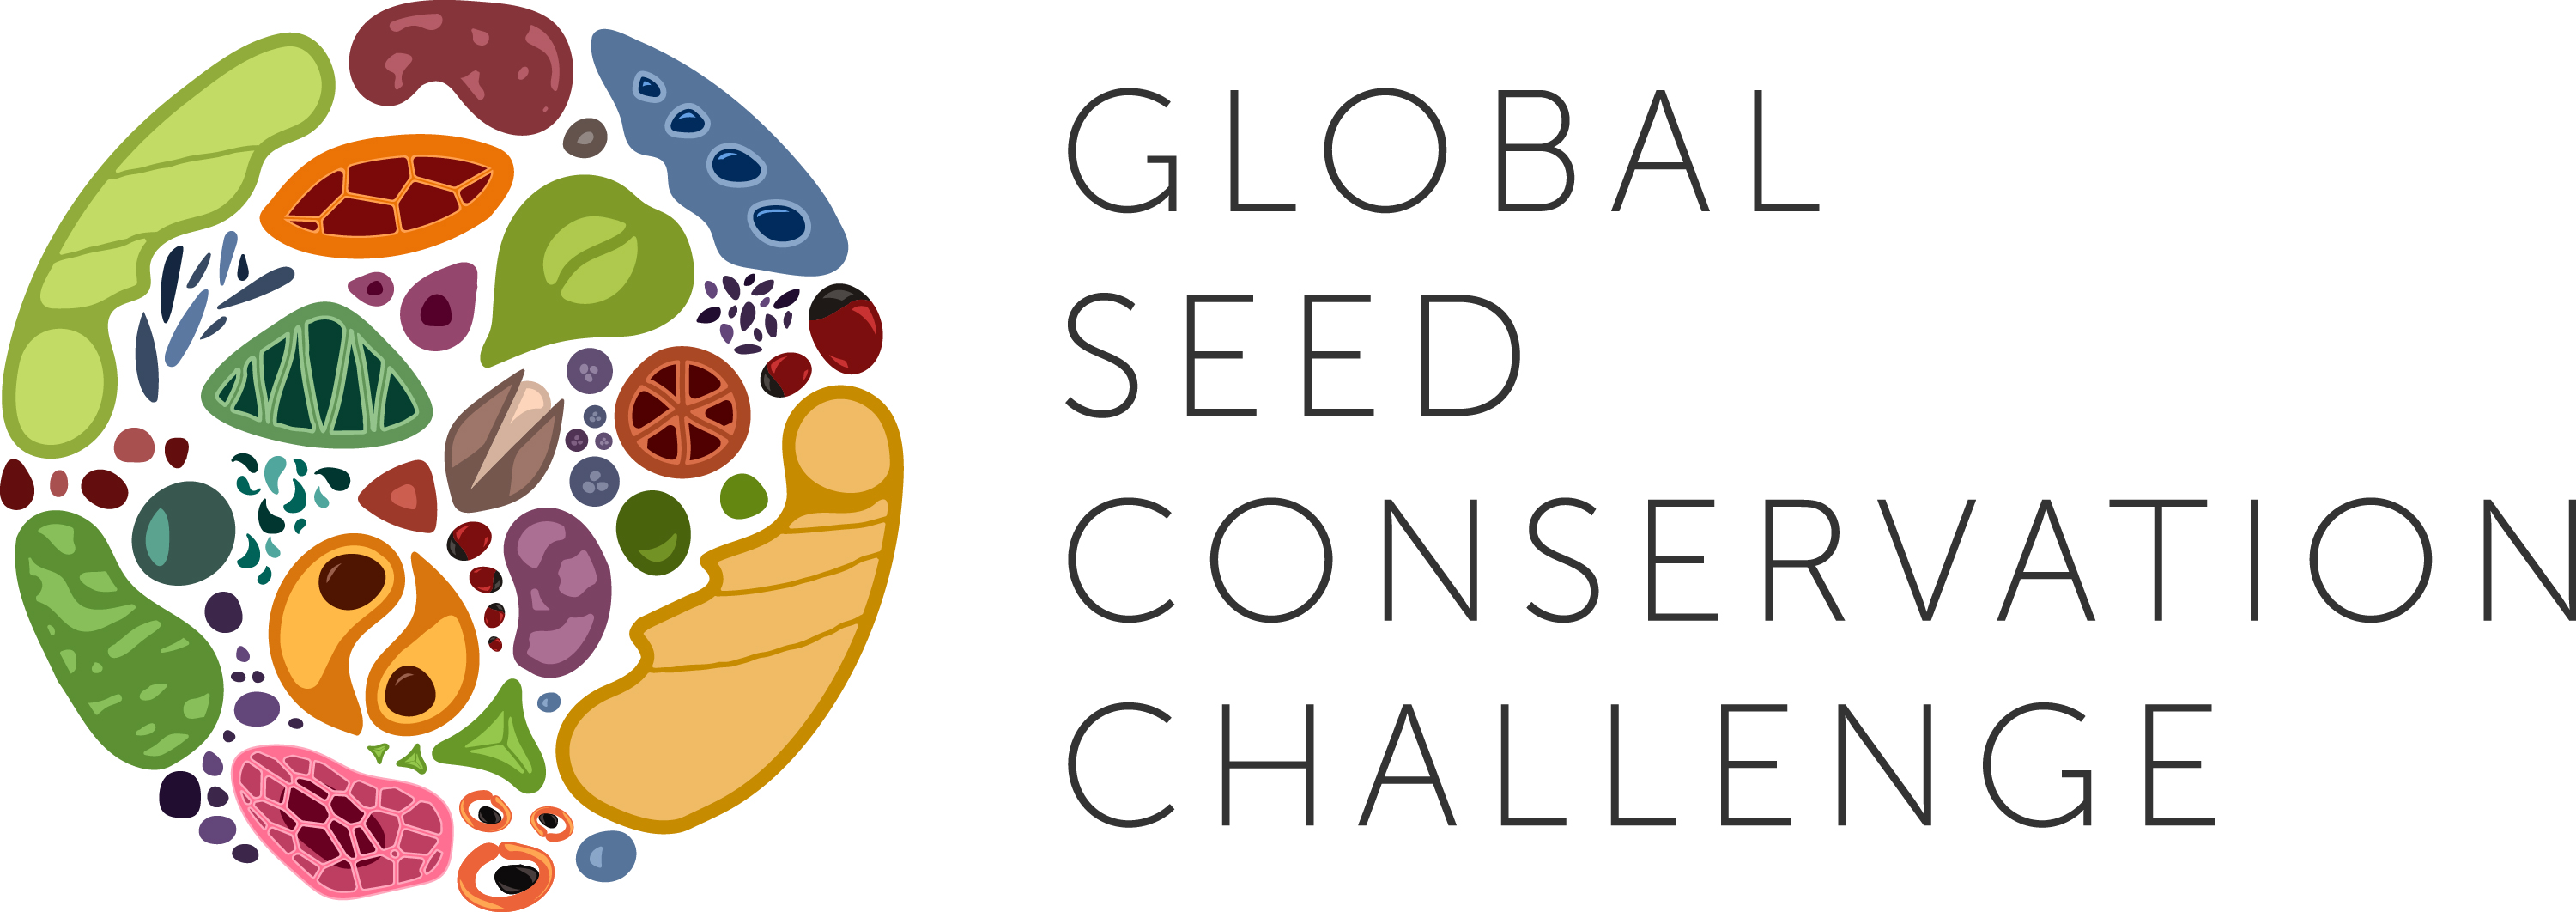 Global Seed Conservation Challenge Logo